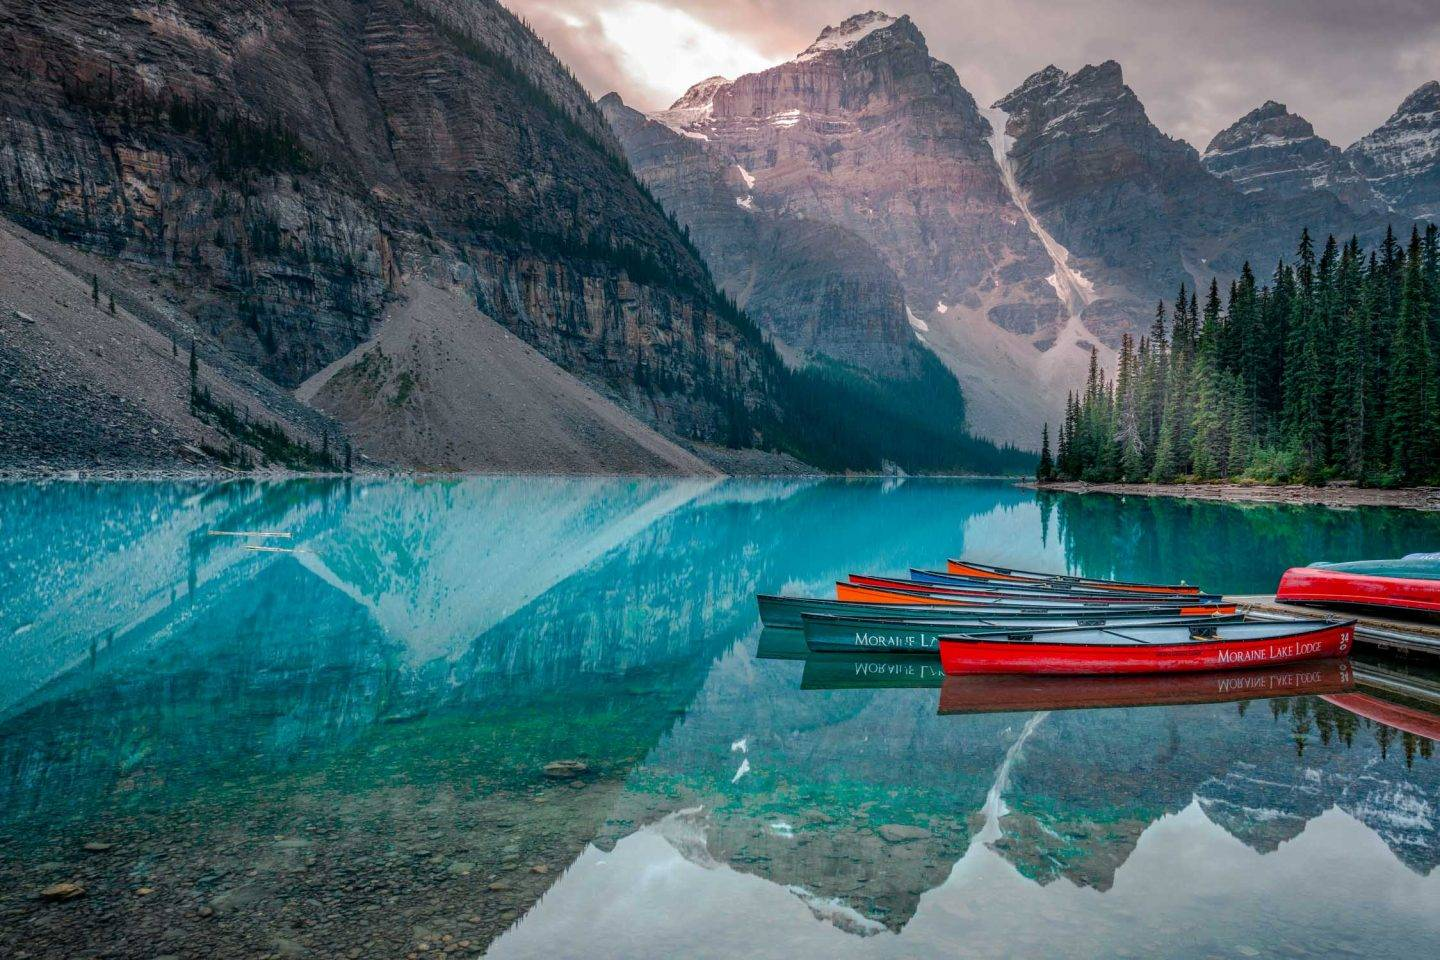 Looking for the best provincial parks in alberta or Canada? Fret not, because we have the ultimate of all the best parts including highlights, how to get there, and where to stay and where the closest airport is. Our favorites are Moraine Lake and Lake Louise